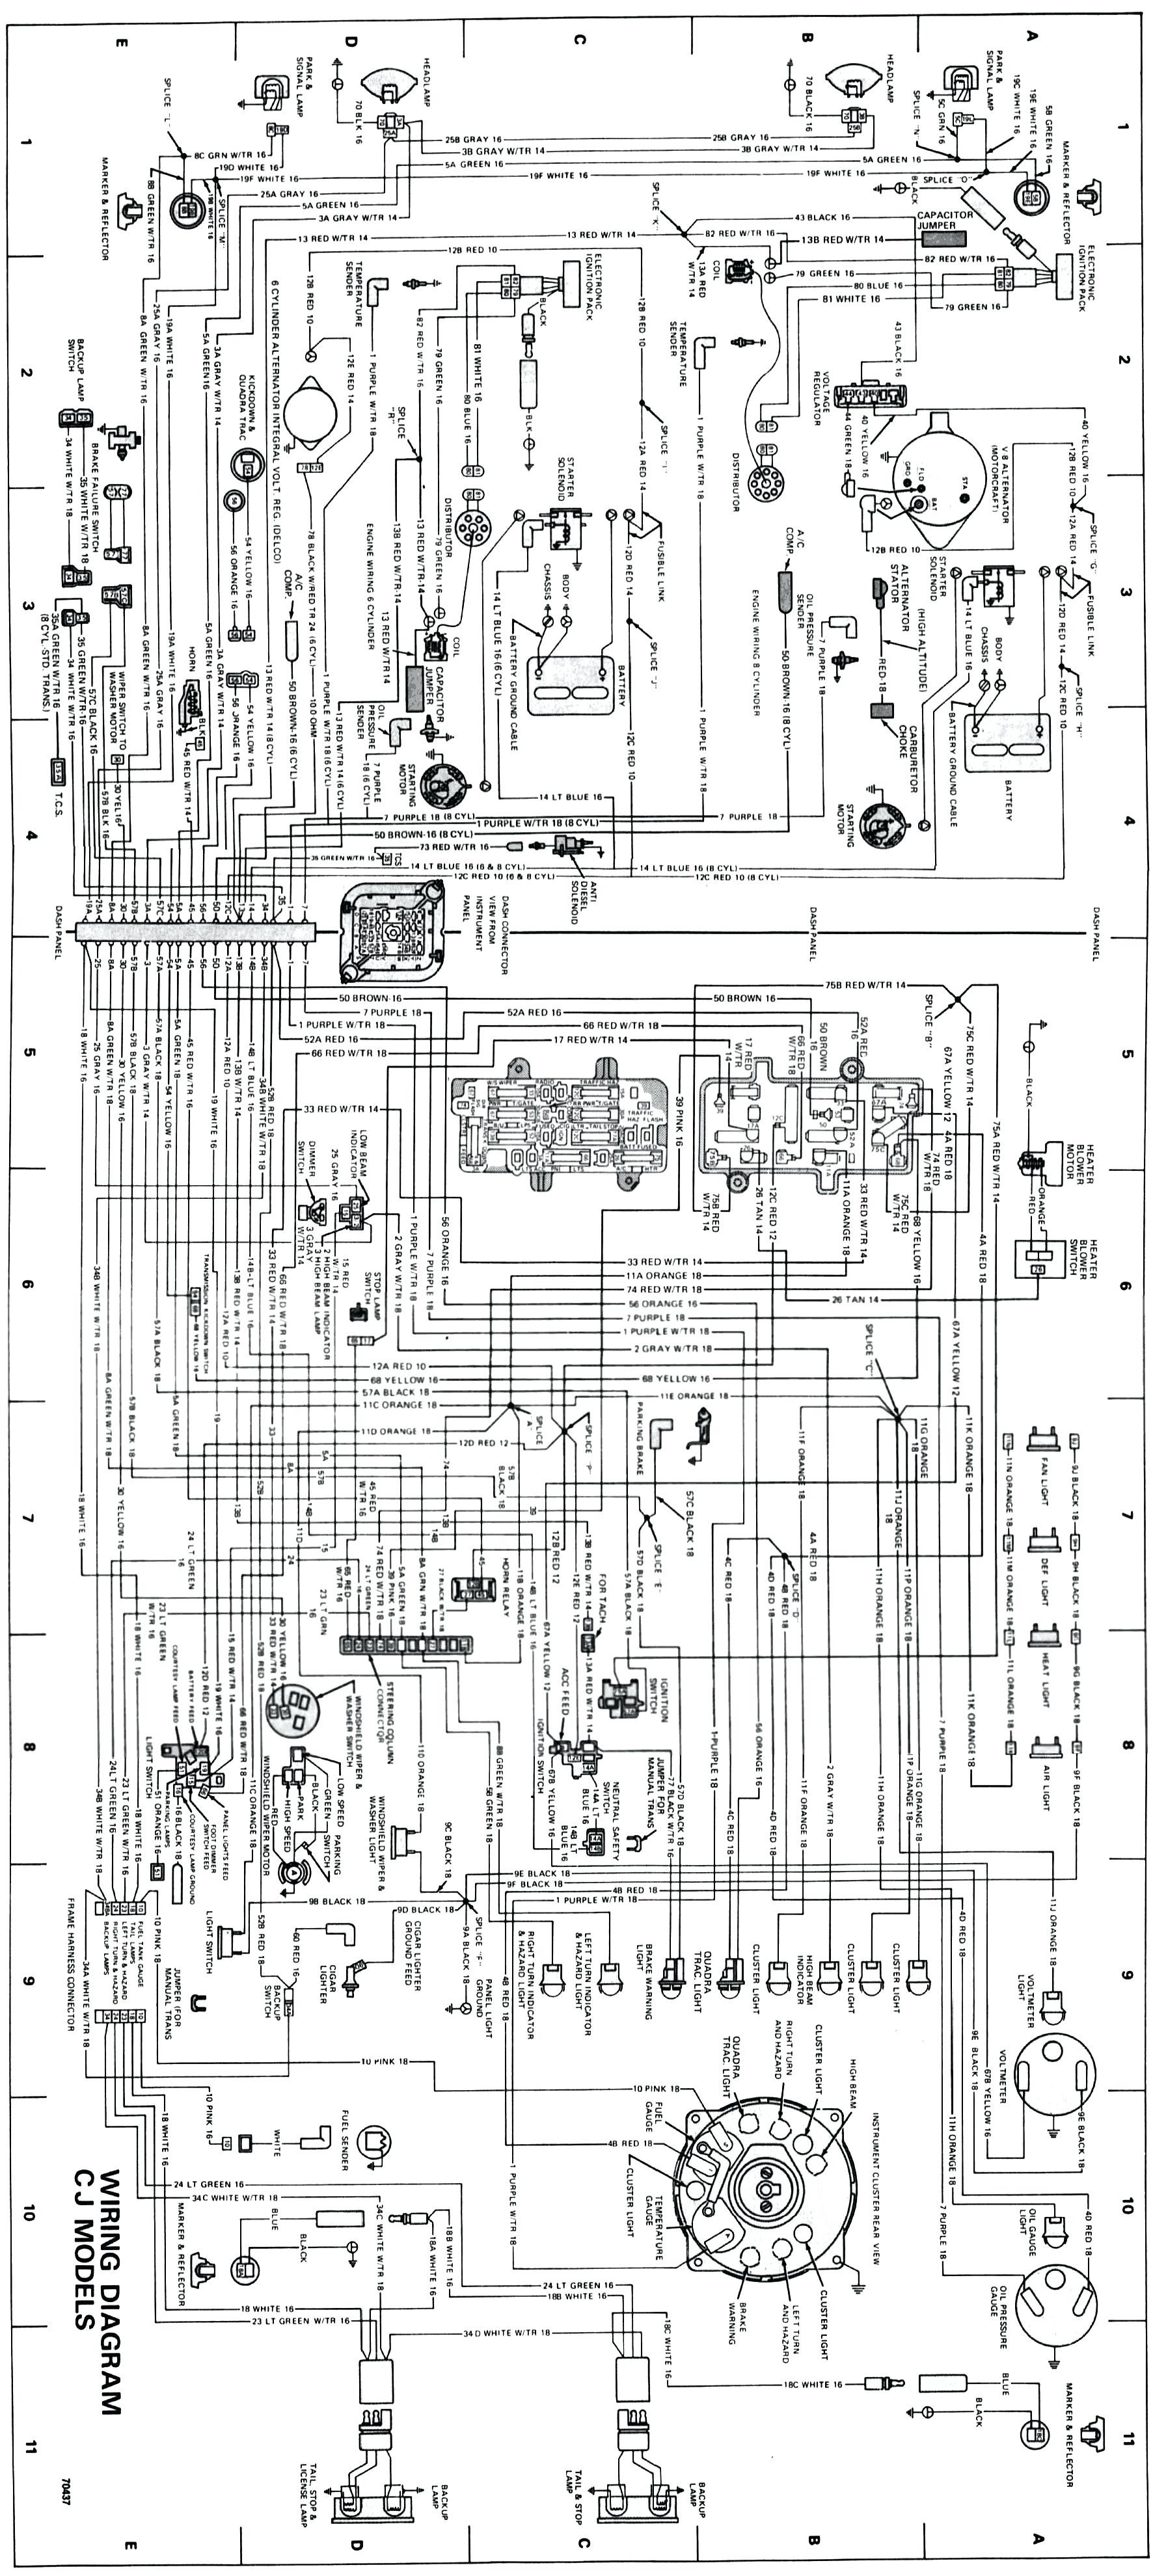 Gm Heater Wiring Harness Diagram Jeep Cj List Of Schematic Circuit 1982 Cj7 Schematics Rh Caltech Ctp Com